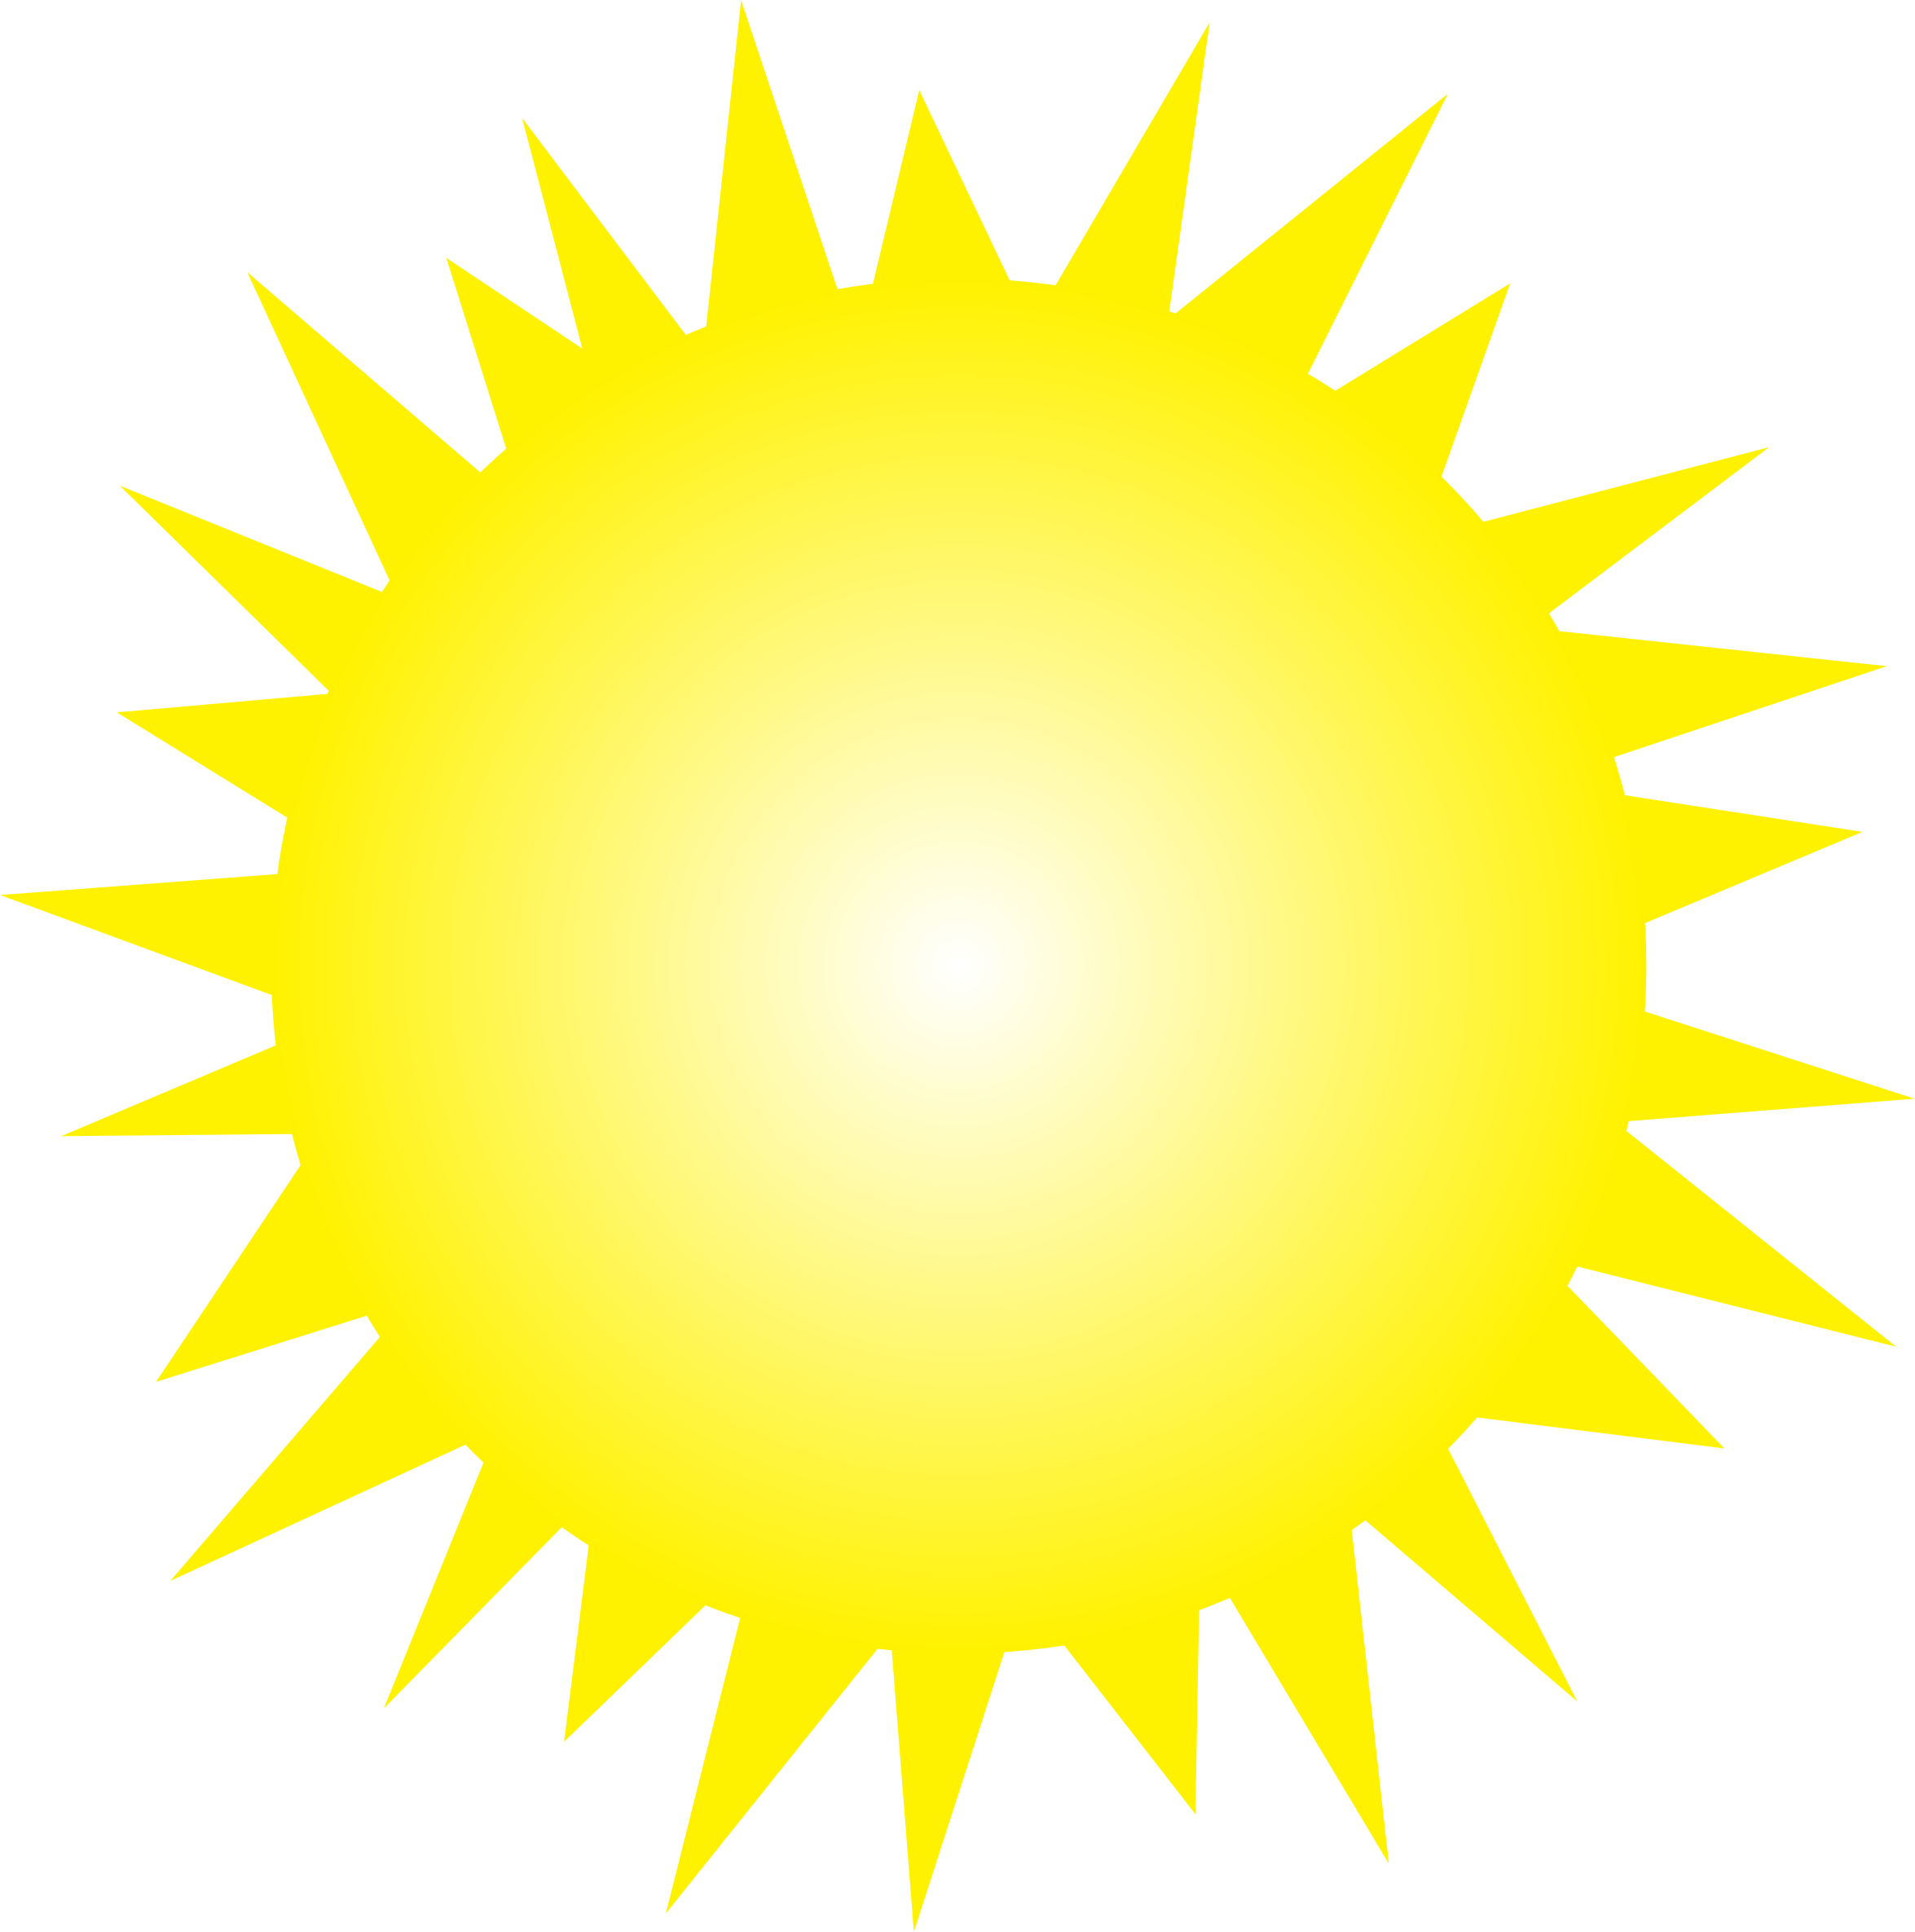 Hd Sun Png Transparent Background